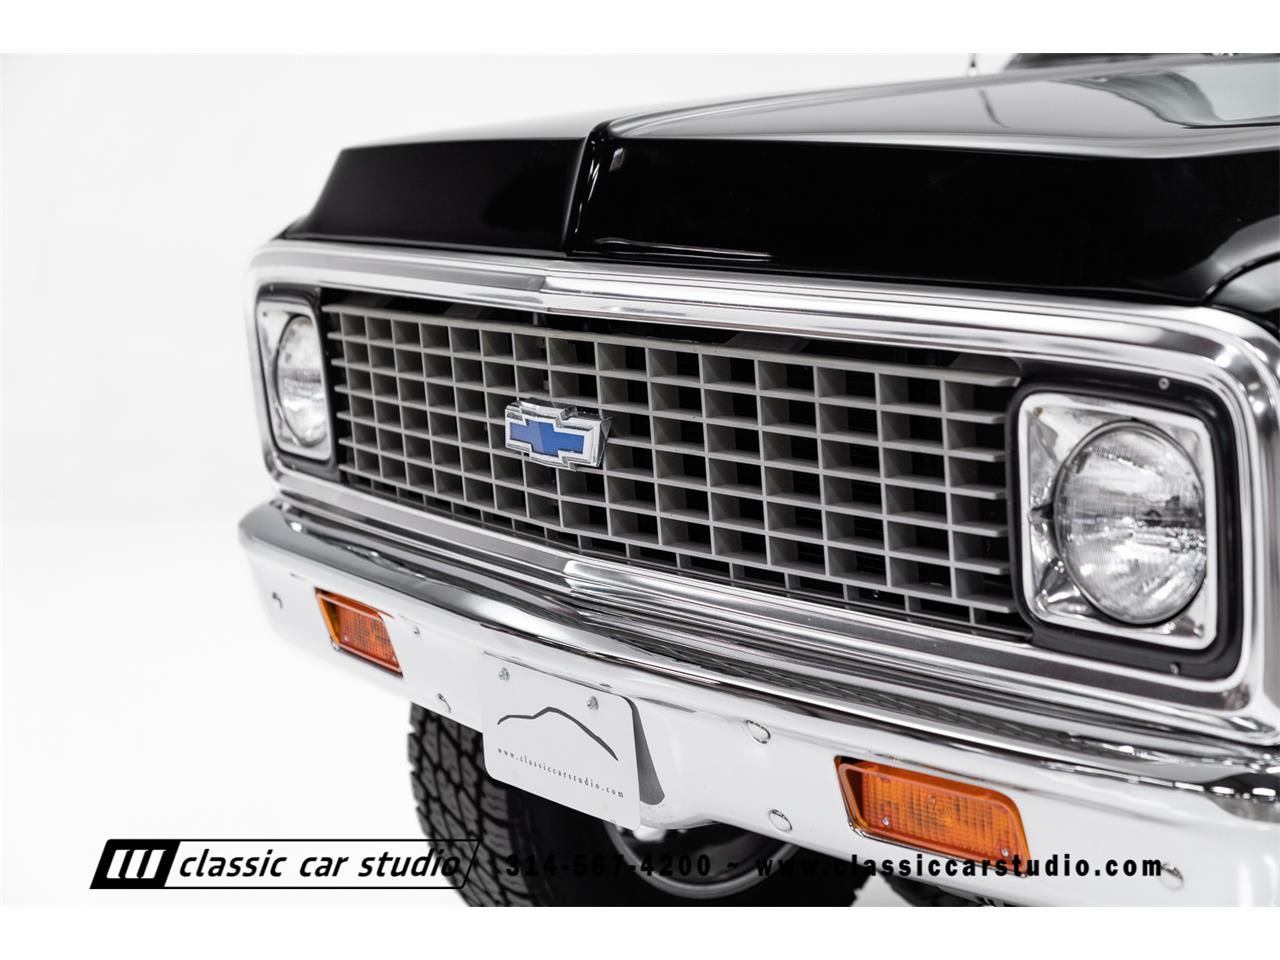 Large Picture of '71 Chevrolet K-10 located in SAINT LOUIS Missouri Offered by Classic Car Studio - OLTK